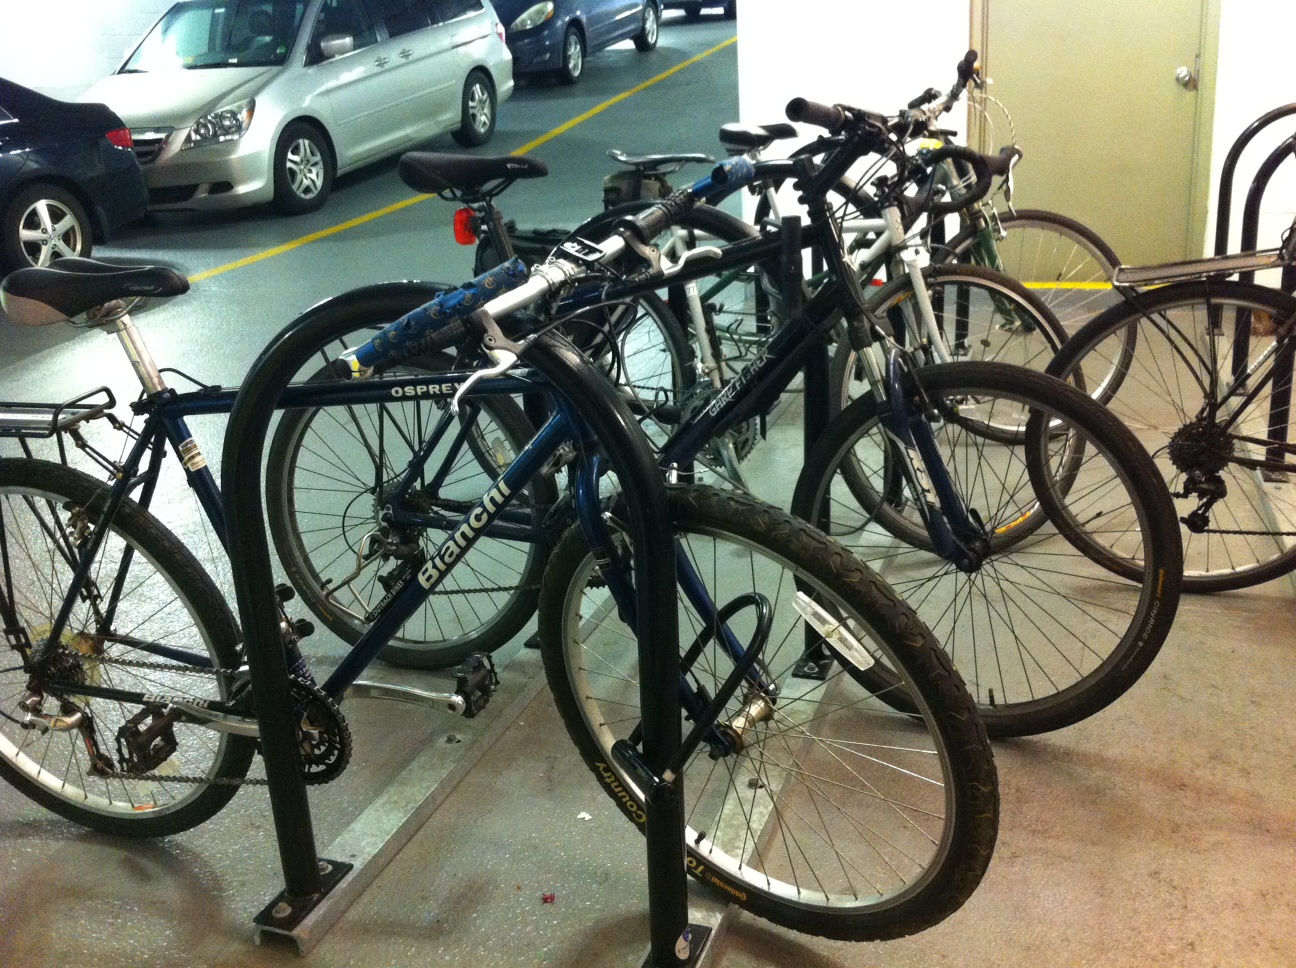 Bike commuters have their own parking problems